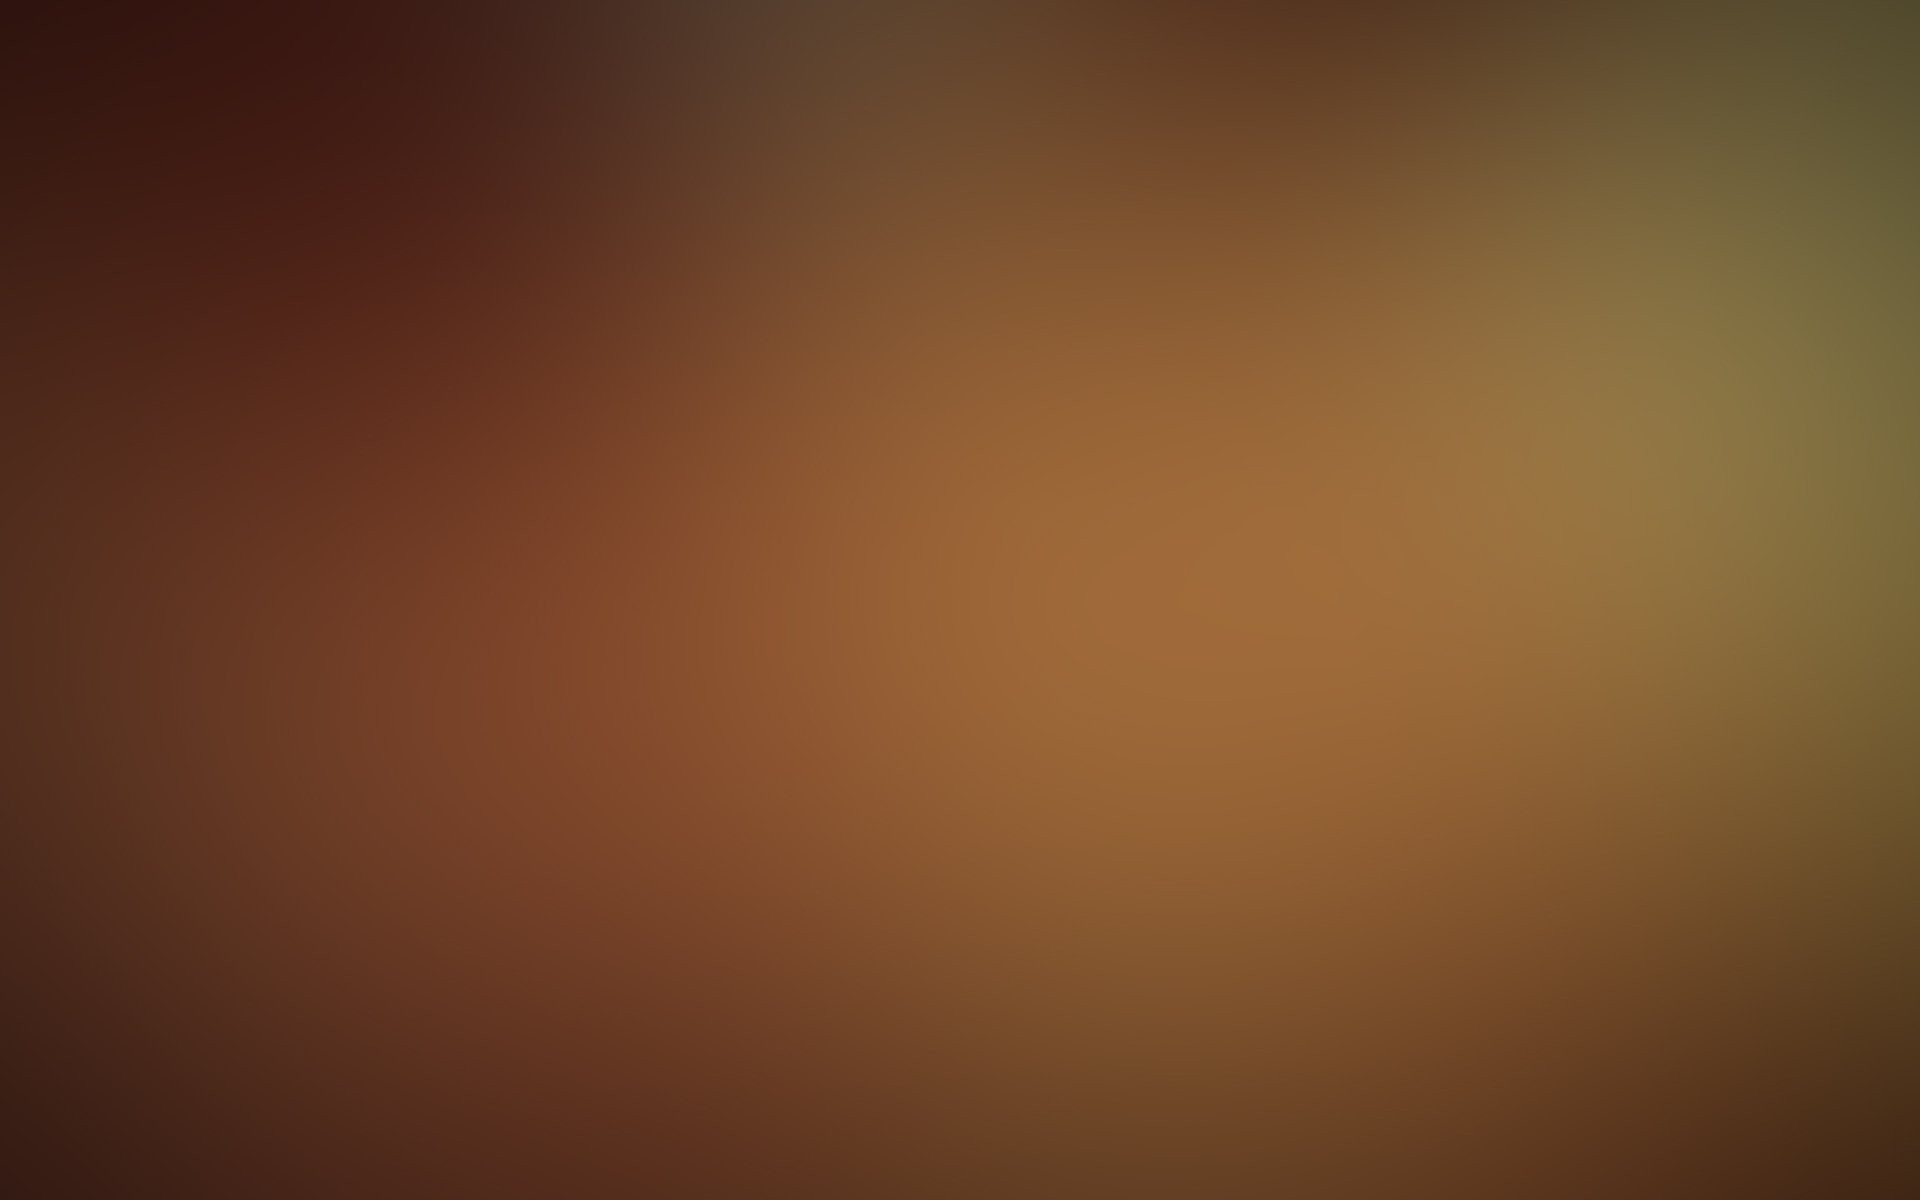 Brown Wallpaper Iphone X Background Gradient 183 ① Download Free High Resolution